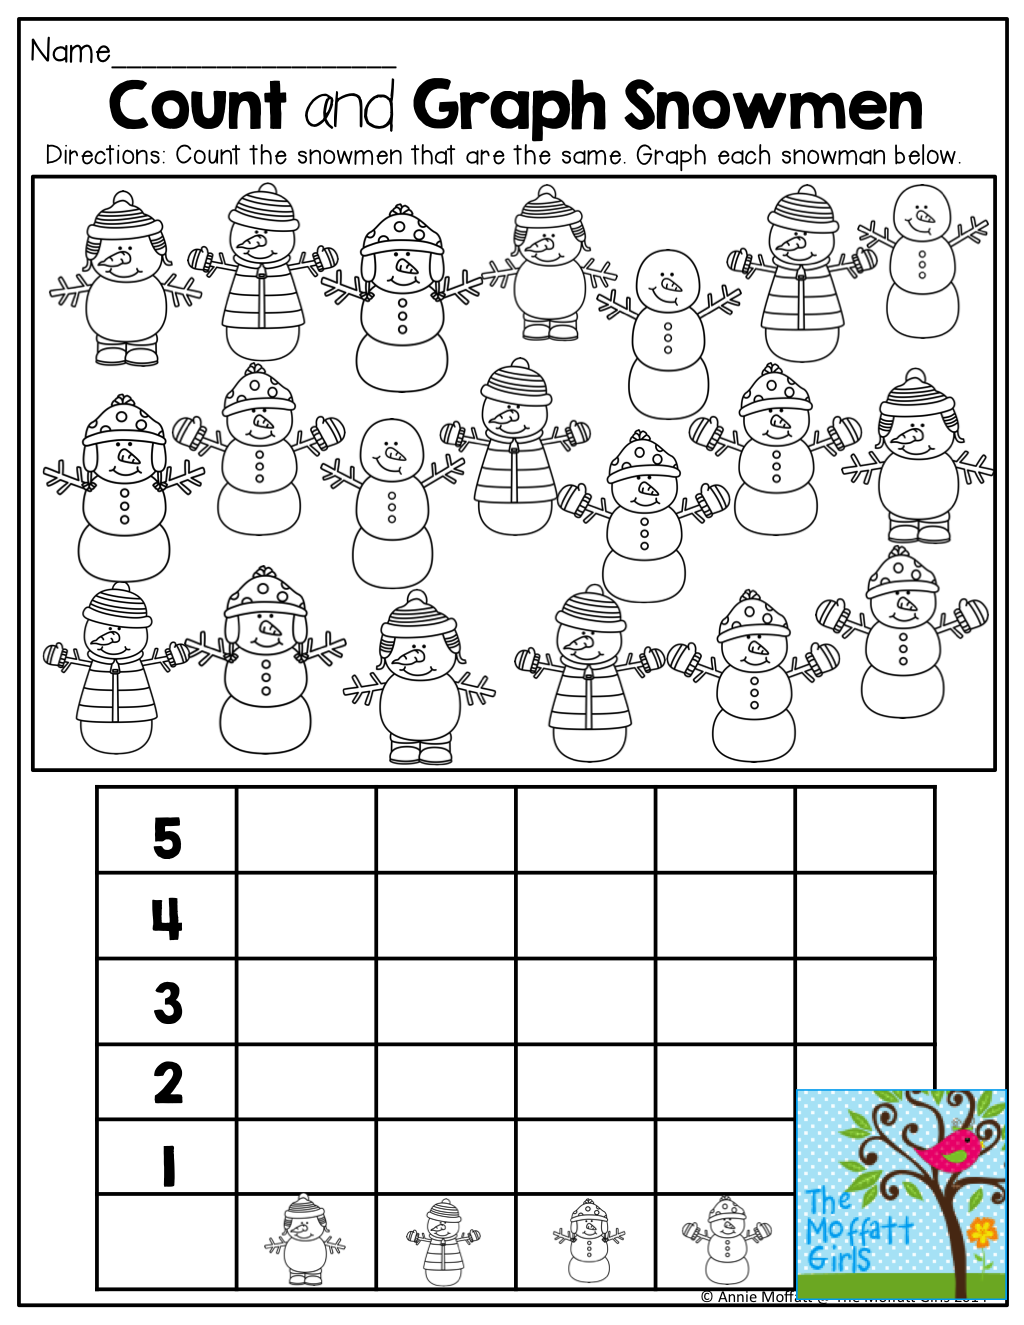 worksheet Christmas Graphing Worksheets december no prep packet kindergarten snowman count and math graph snowmen tons of great printables